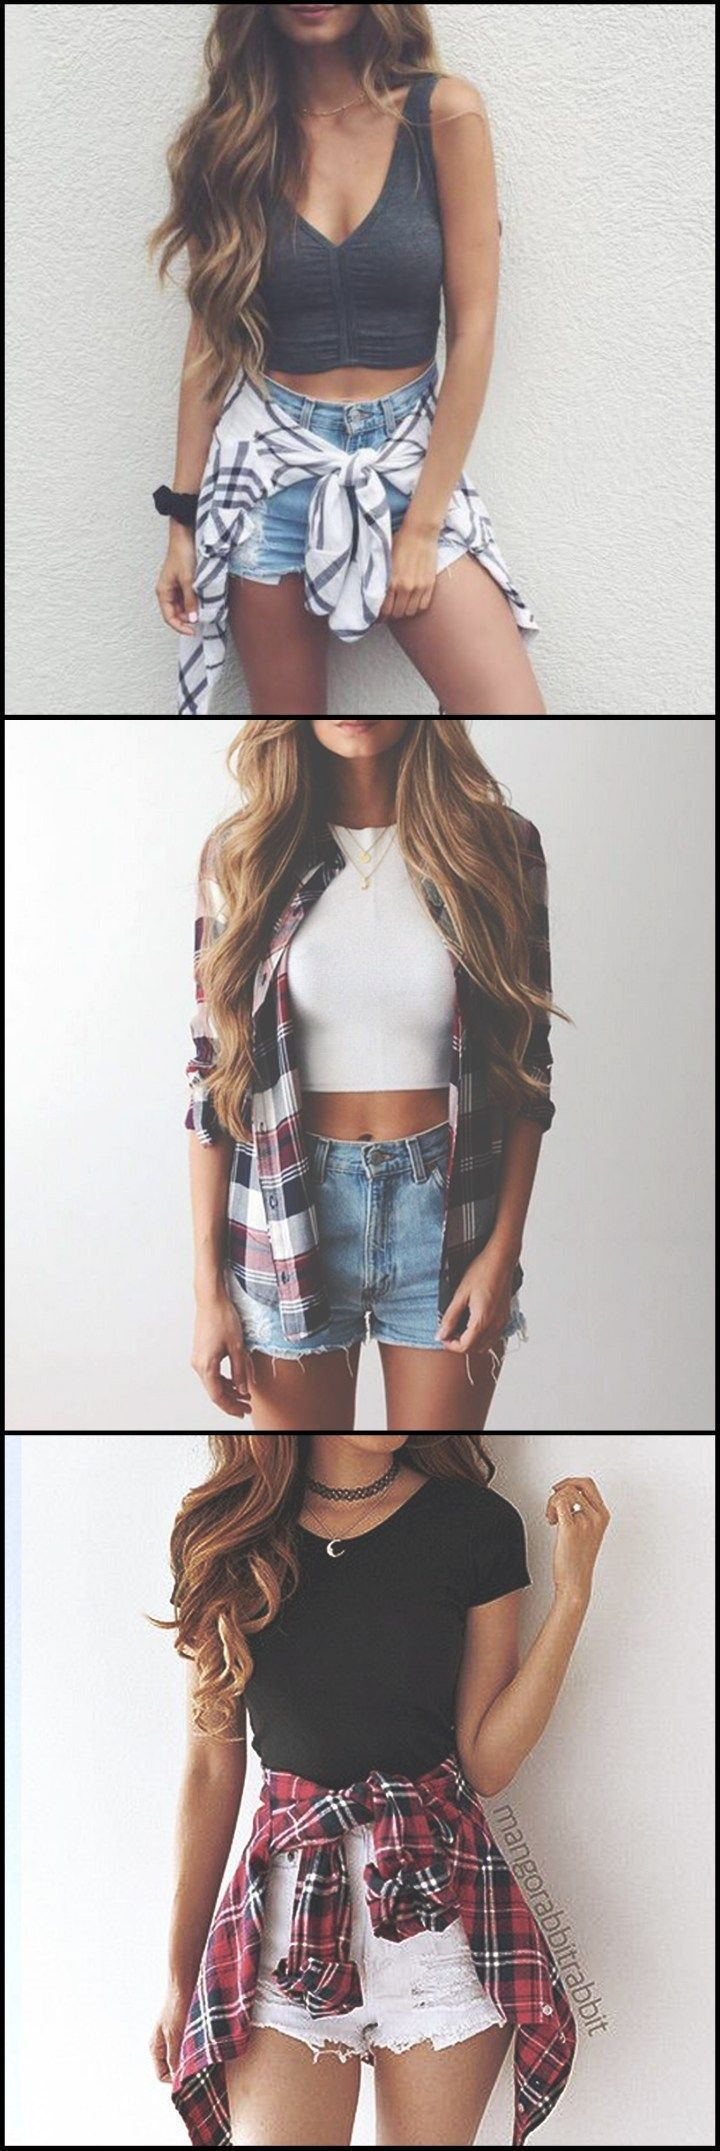 Süße Outfits Süße lässige Sommer-Outfit-Ideen für Teenager 2017 Flanell Plaid High